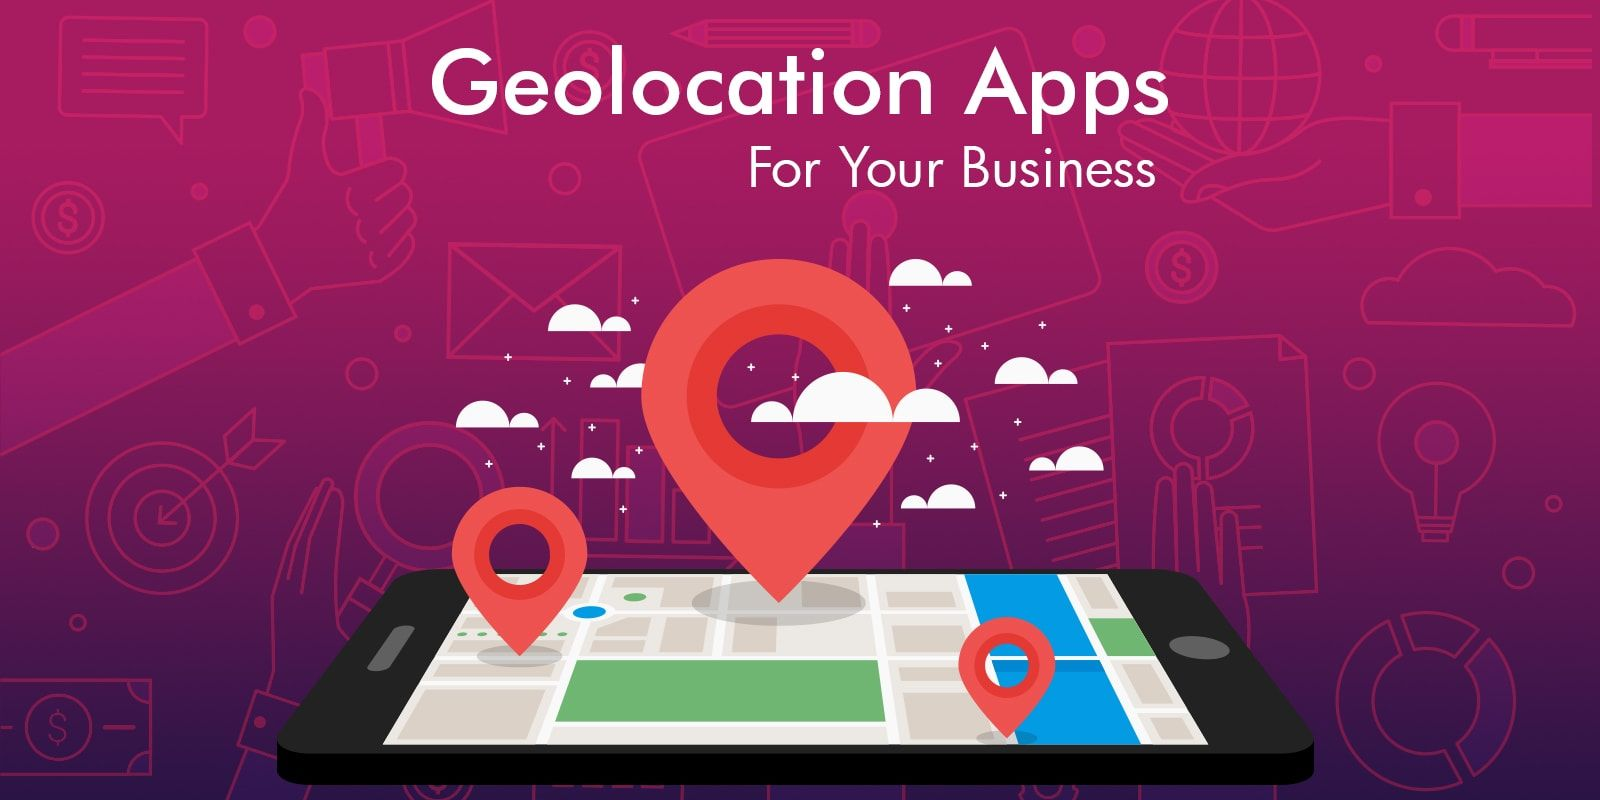 Geolocation simple app idea